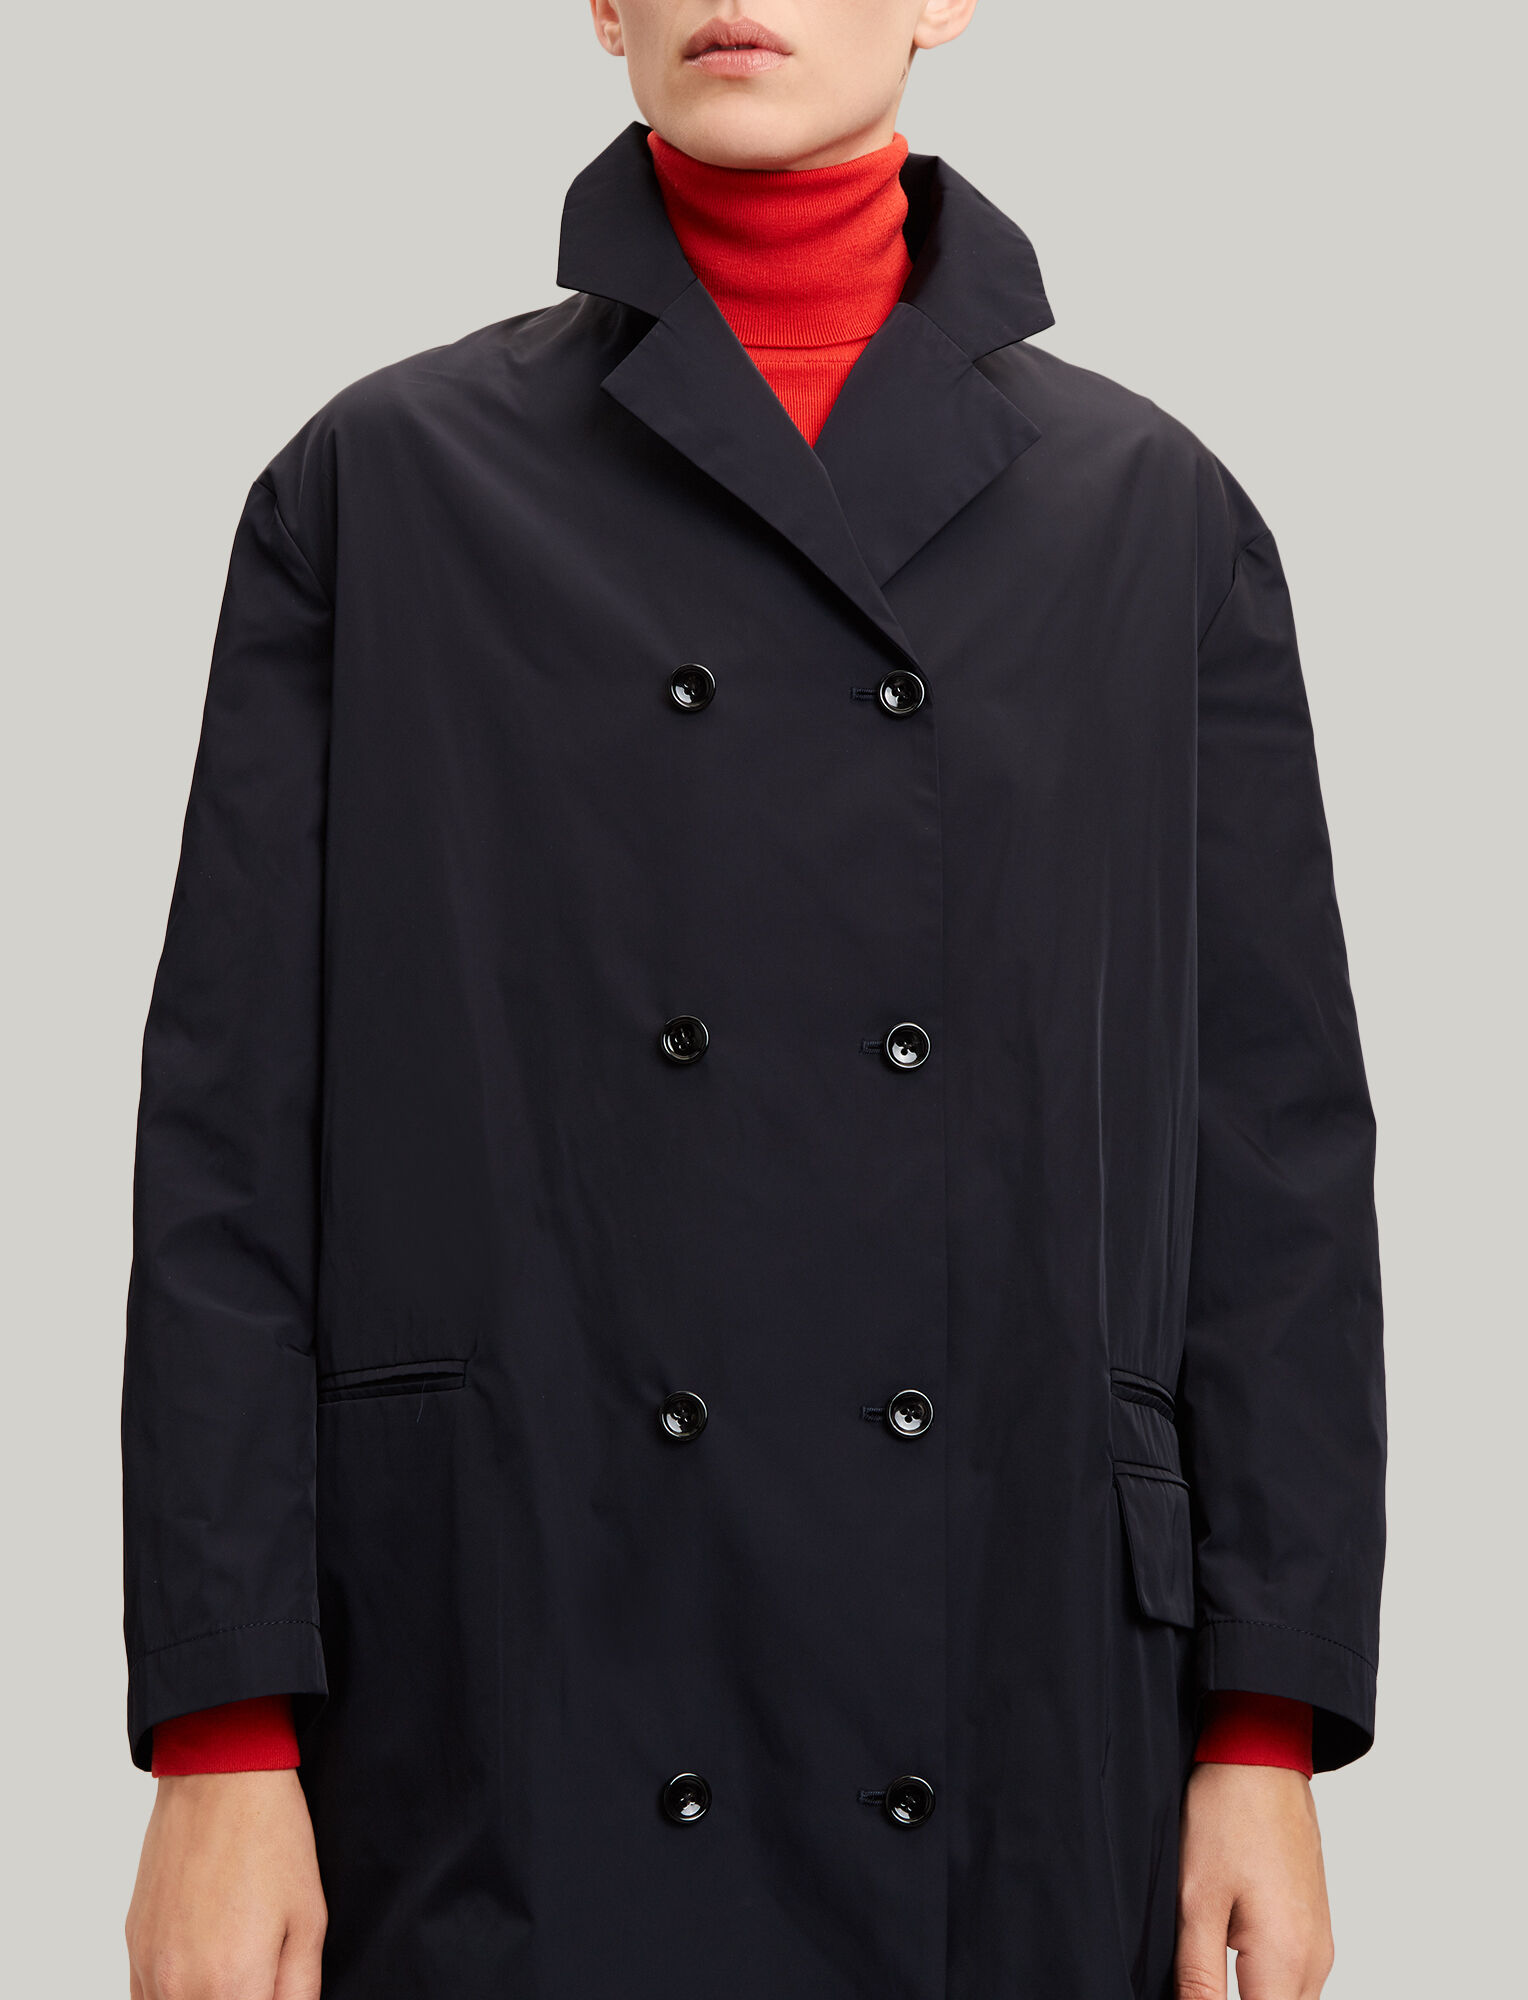 Joseph, Richter Taffeta Nylon Coat, in NAVY